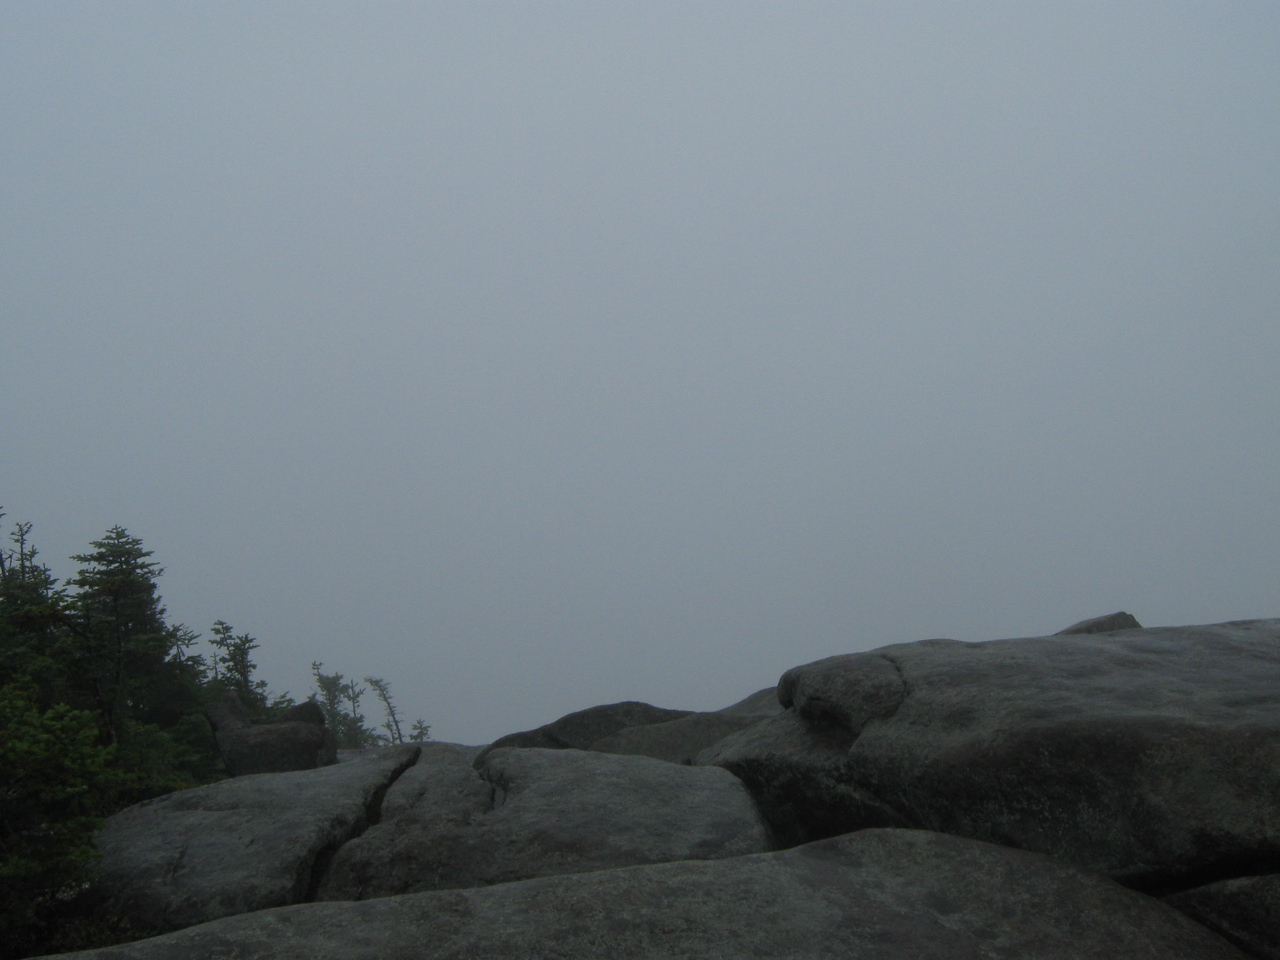 After the torrential downpour, we summited Giant and were rewarded with this view.